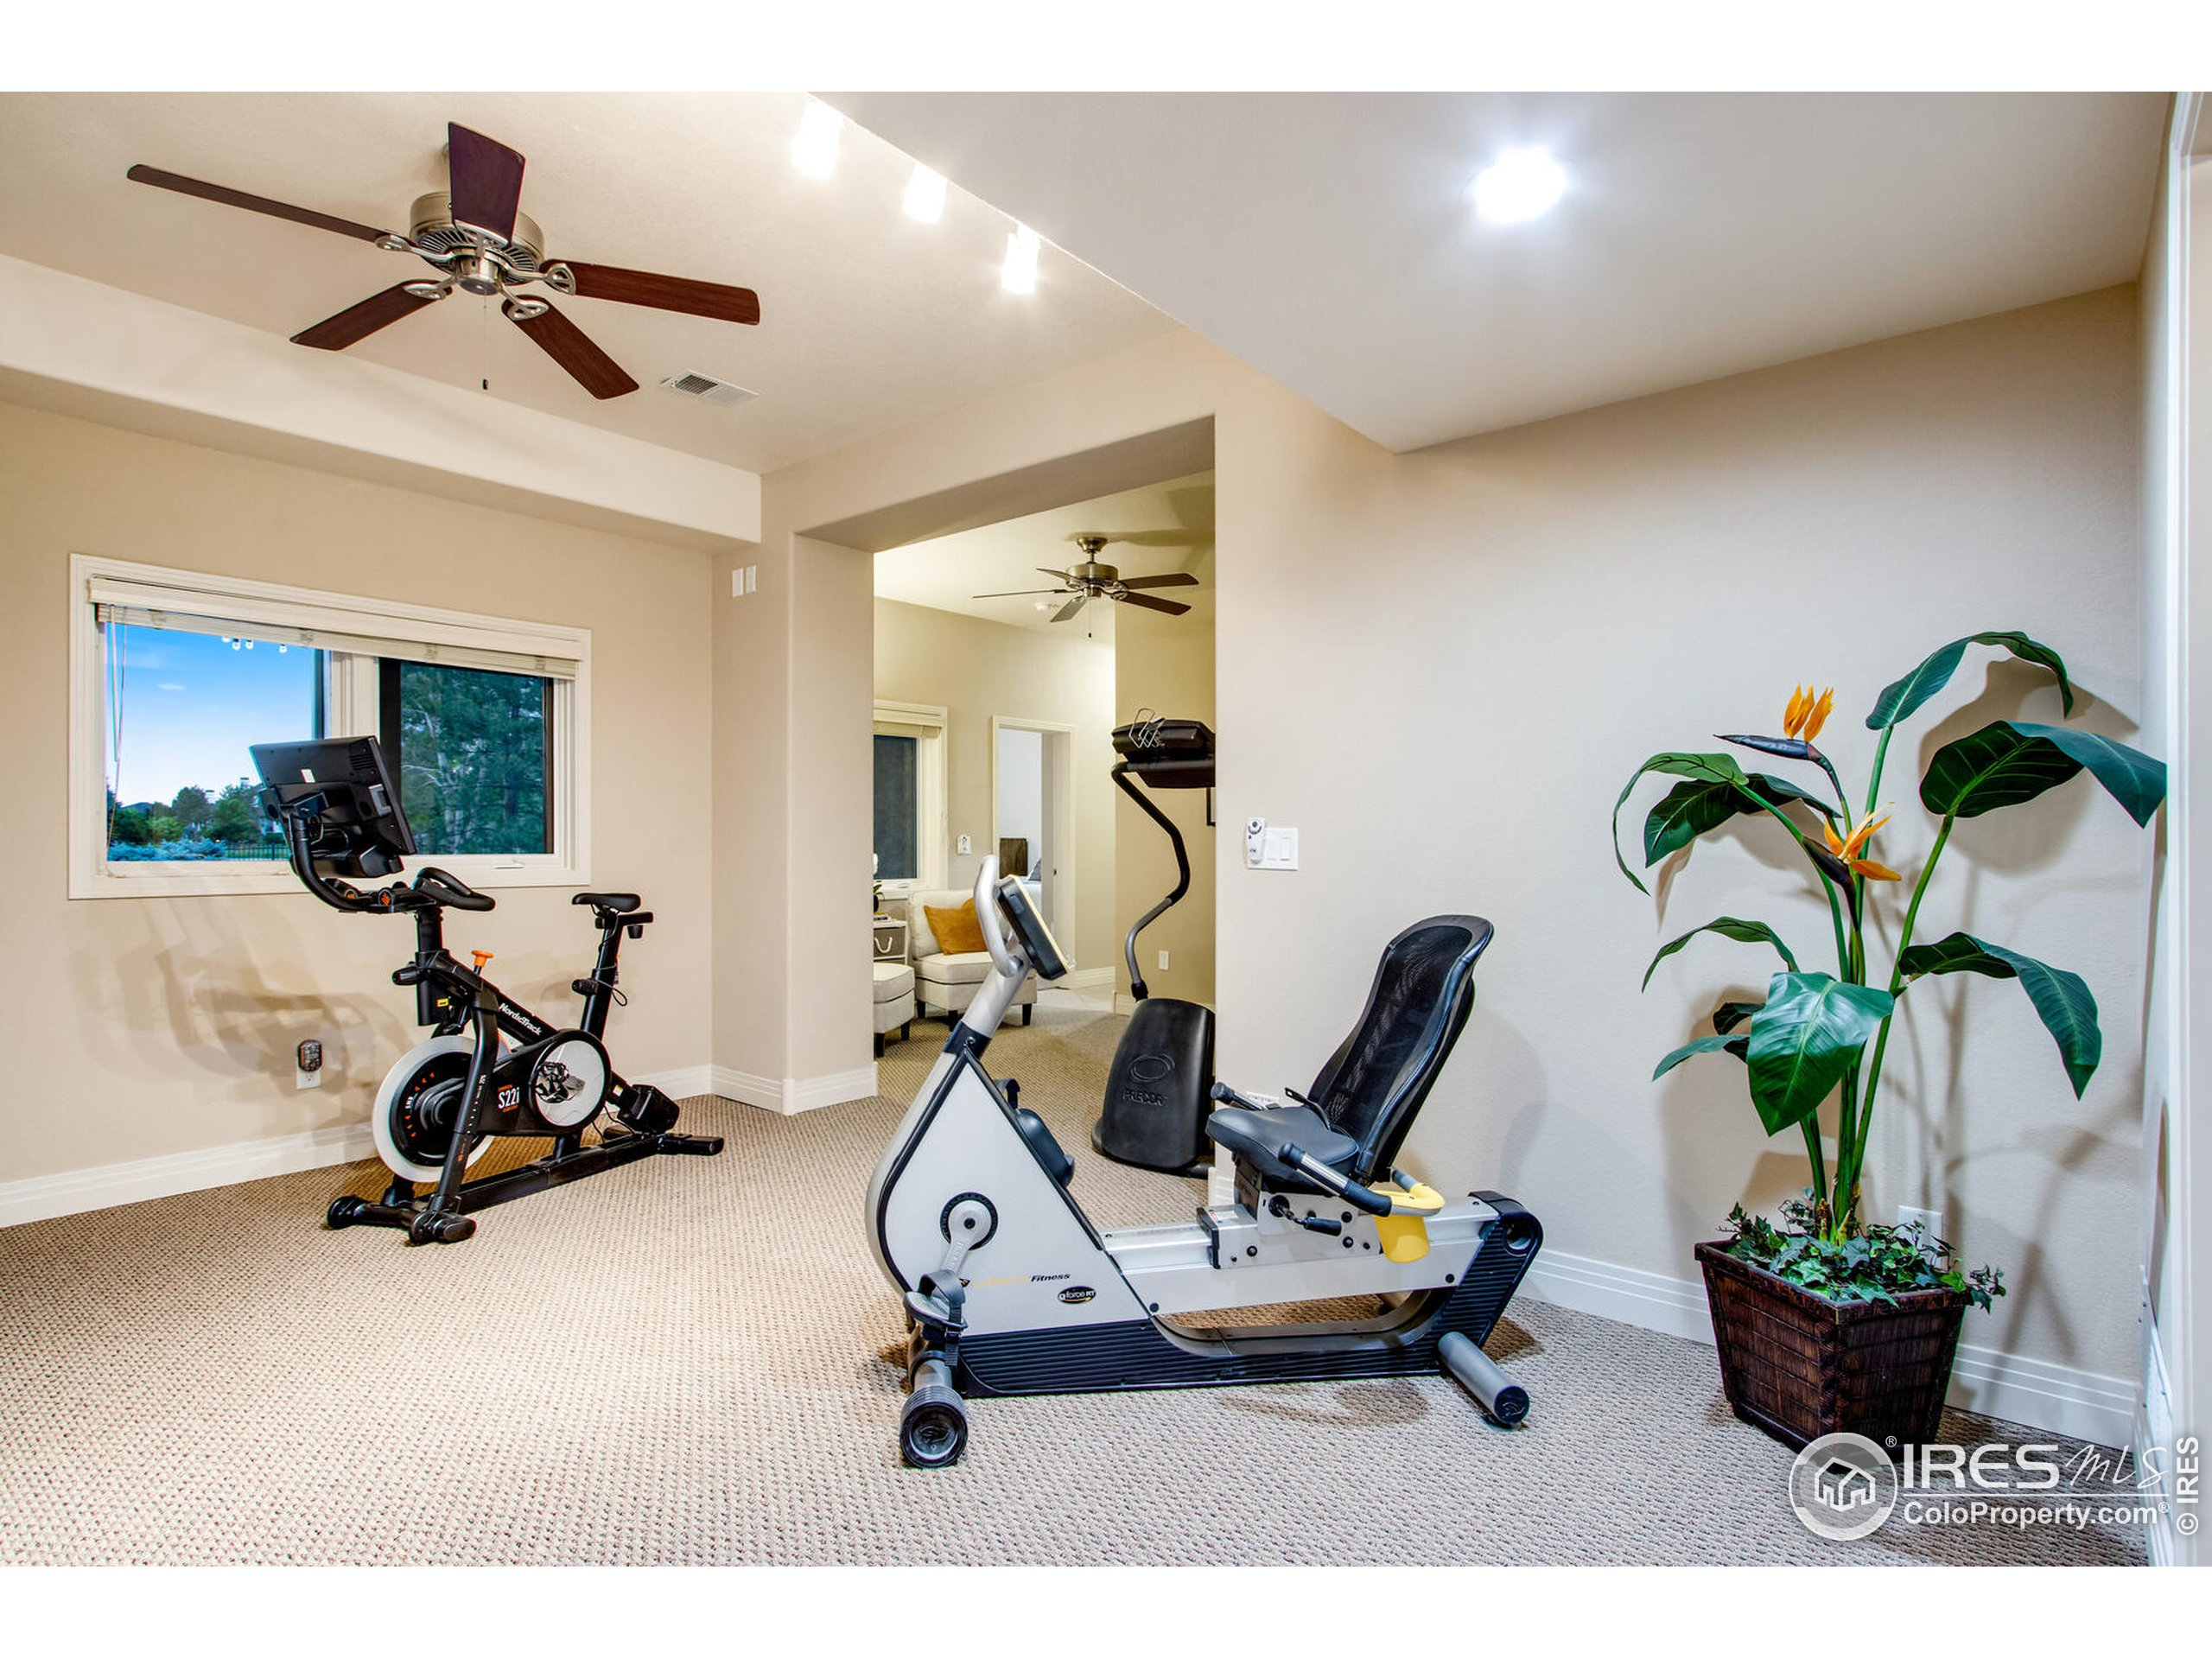 Flex Room - Yoga/Exercise, Playroom, Music Room or quite Sitting/Reading Room